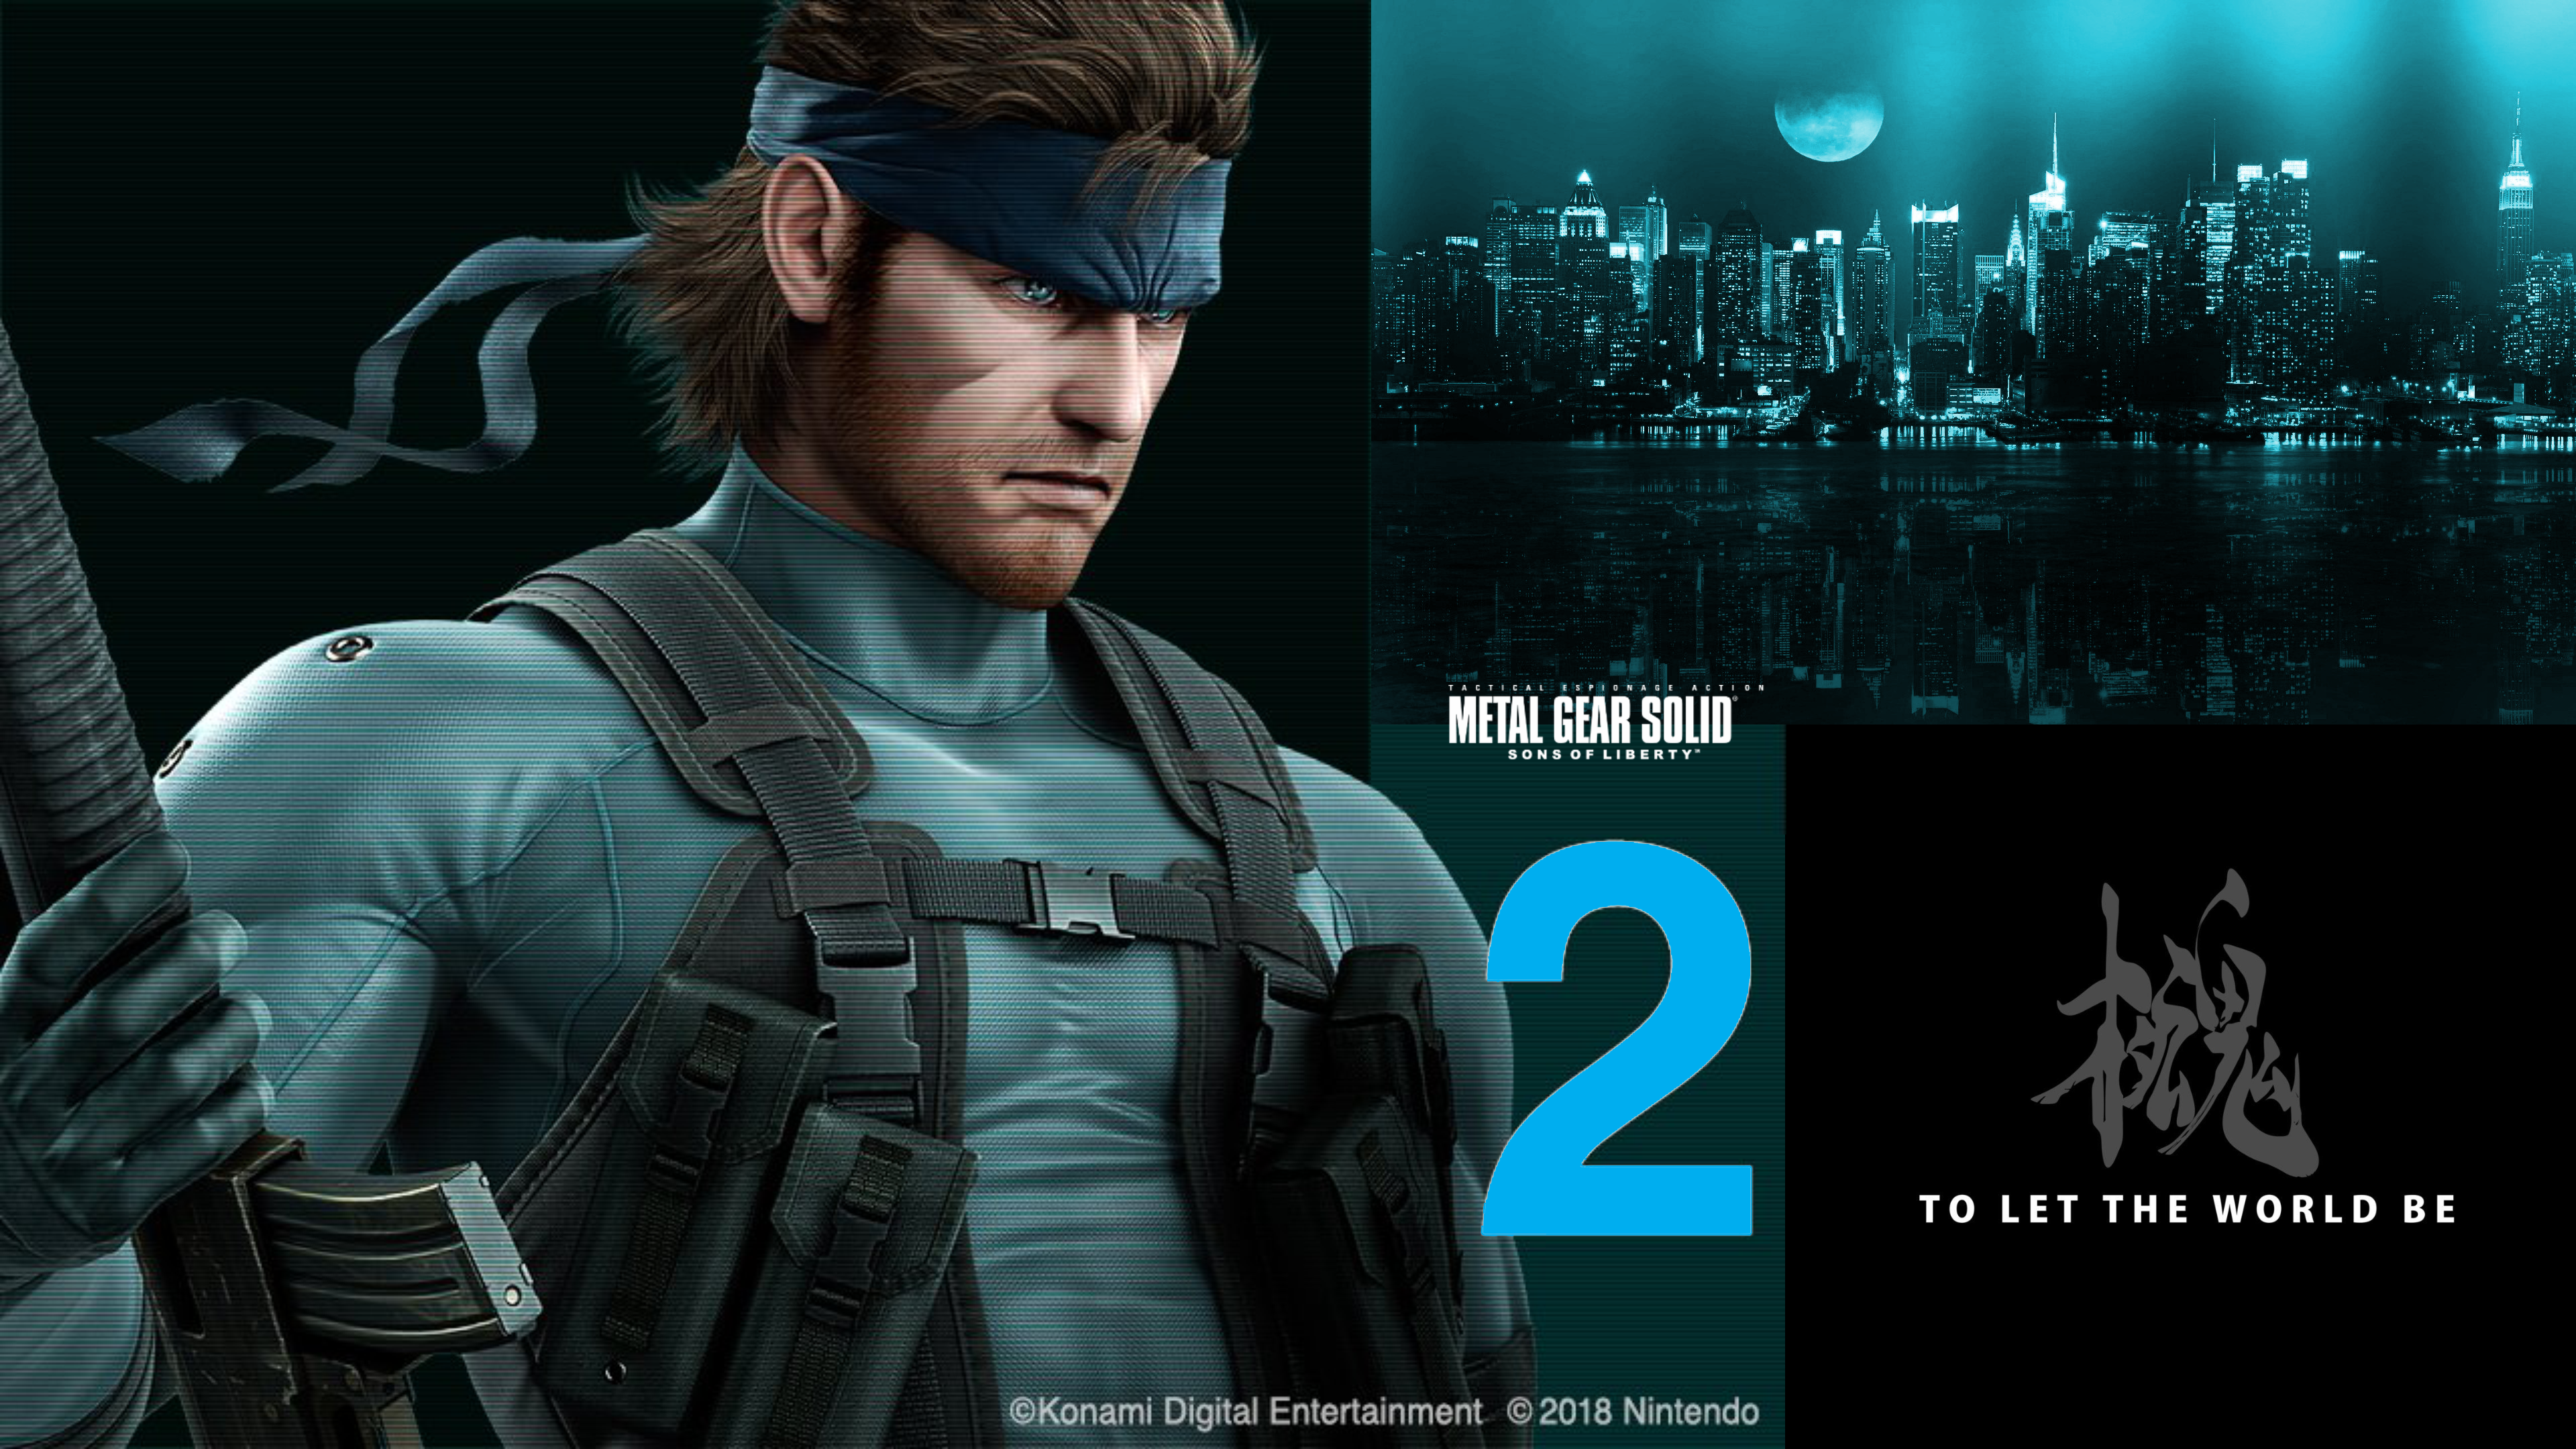 Metal Gear Solid 2 Solid Snake 4k Wallpaper By Georgesears1972 On